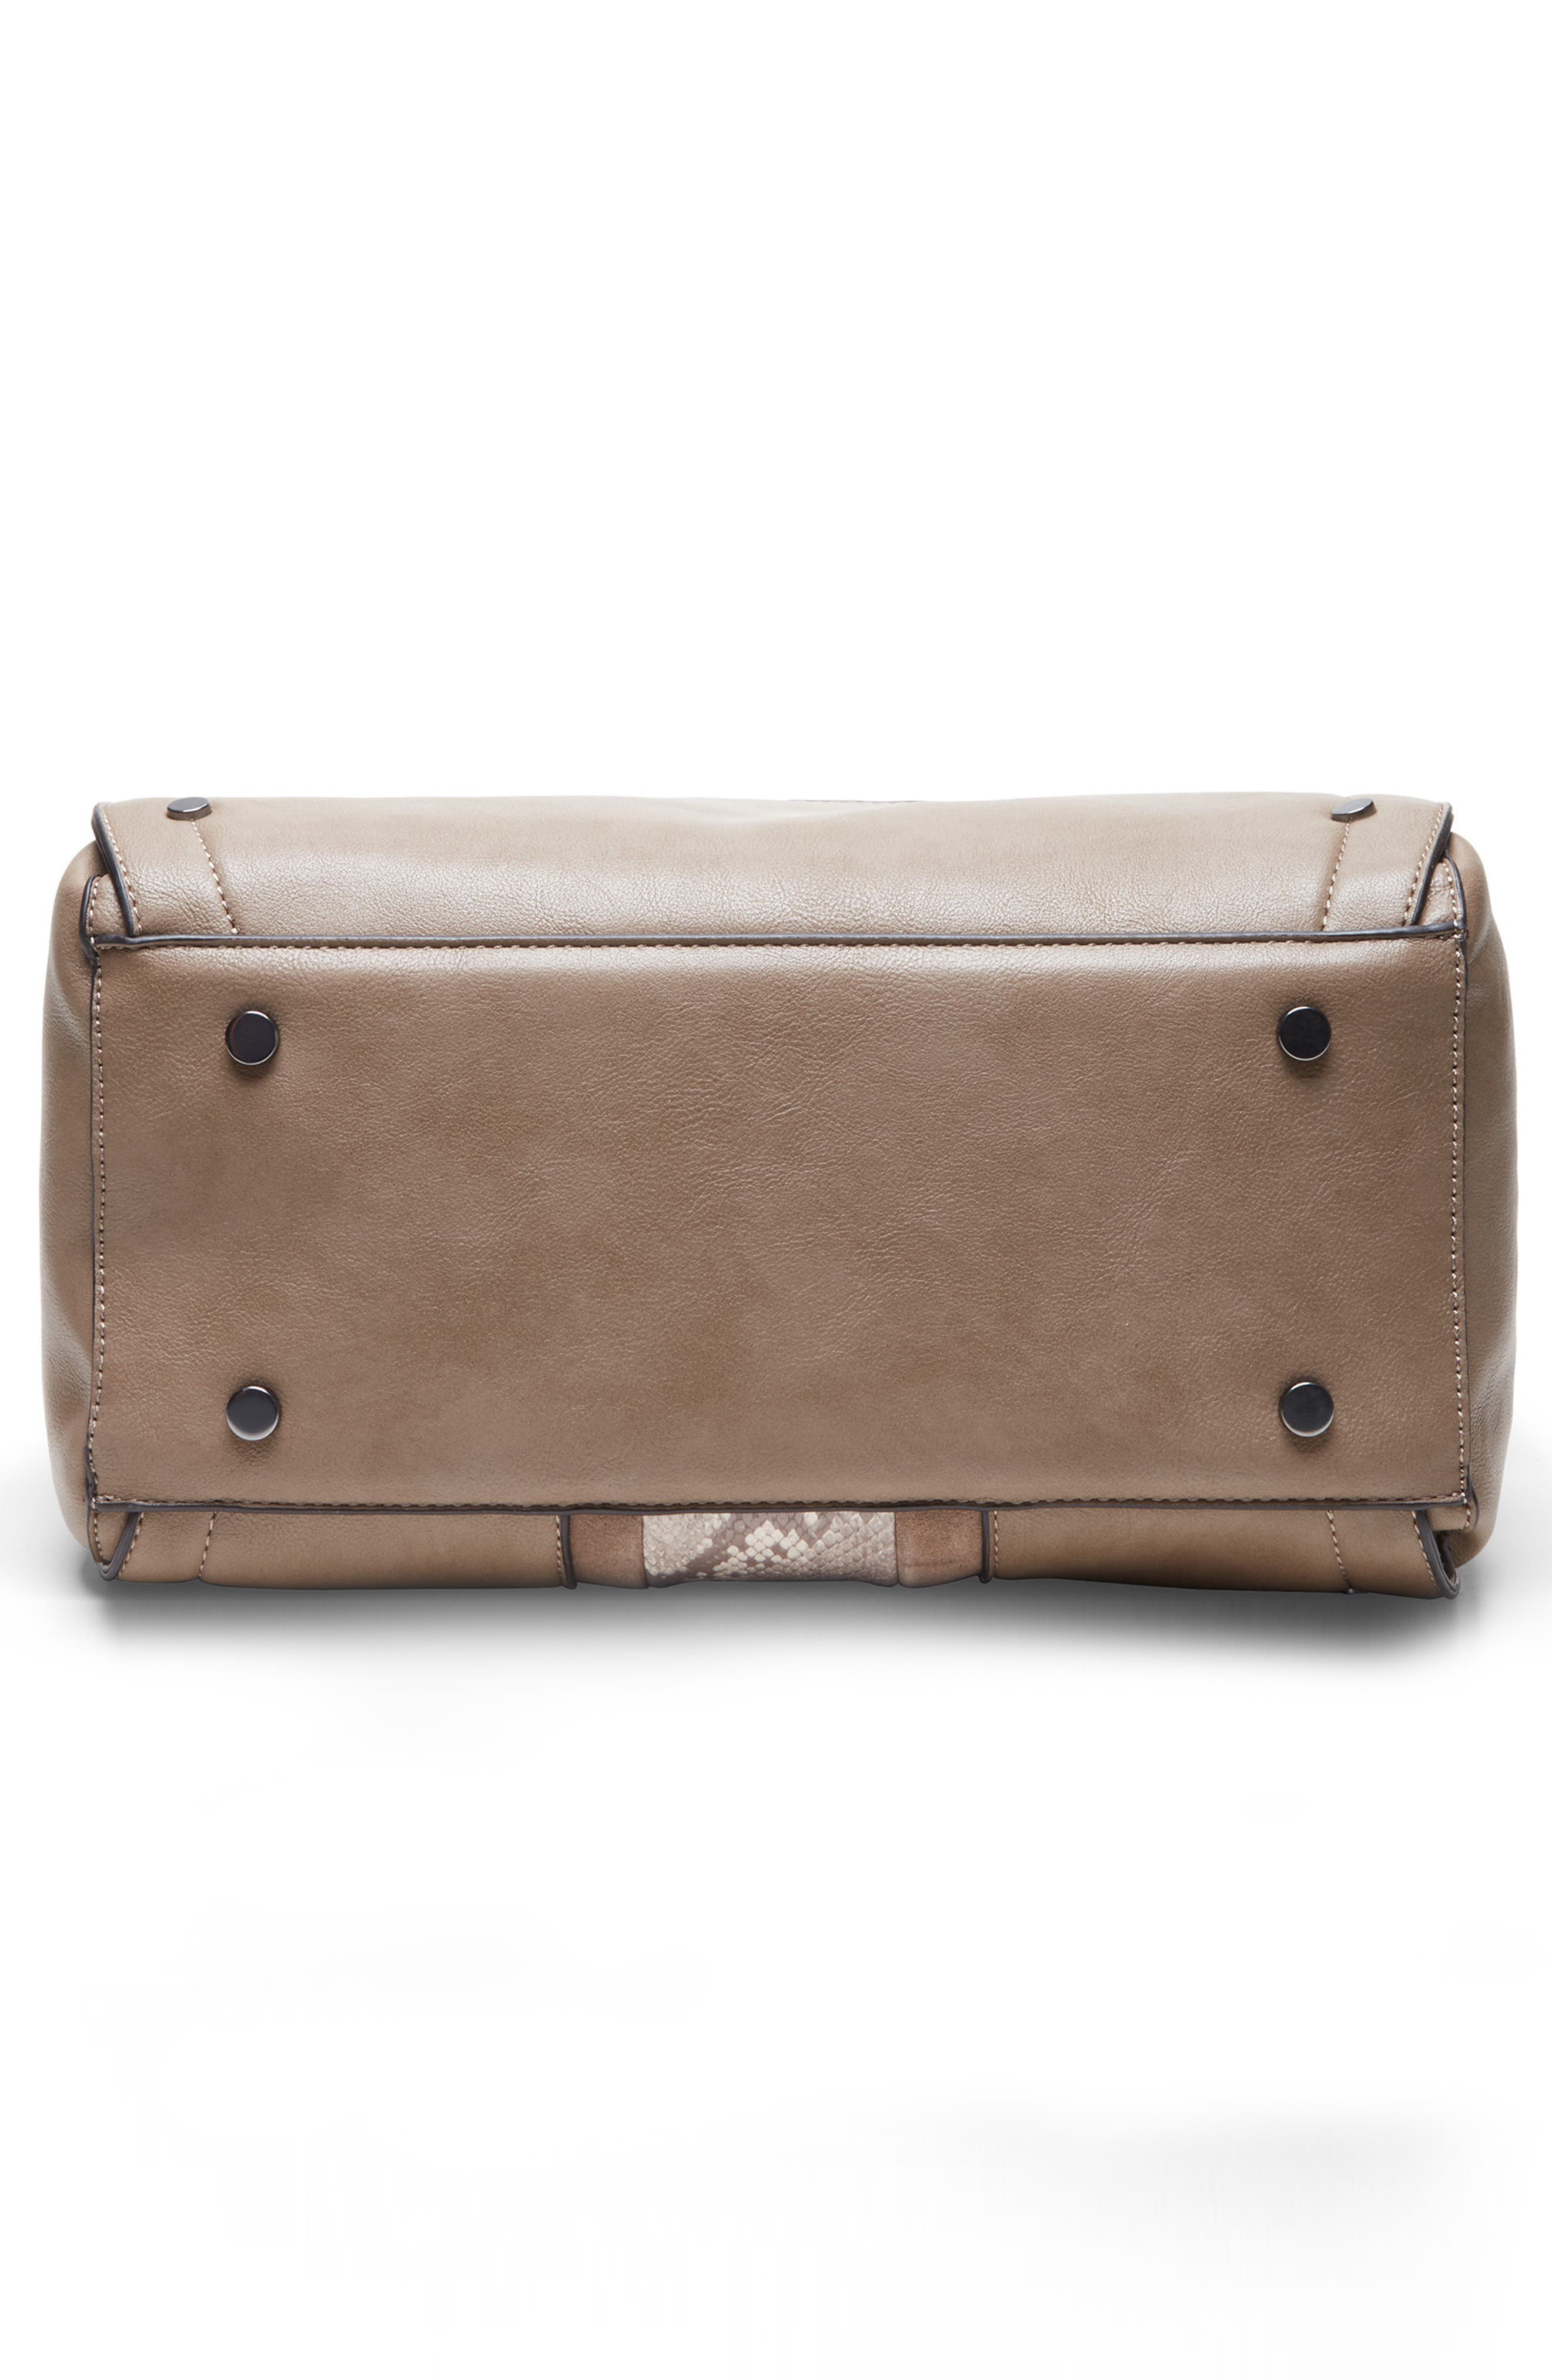 SOLE SOCIETY, Ragna Satchel, Alternate thumbnail 5, color, MUSHROOM COMBO